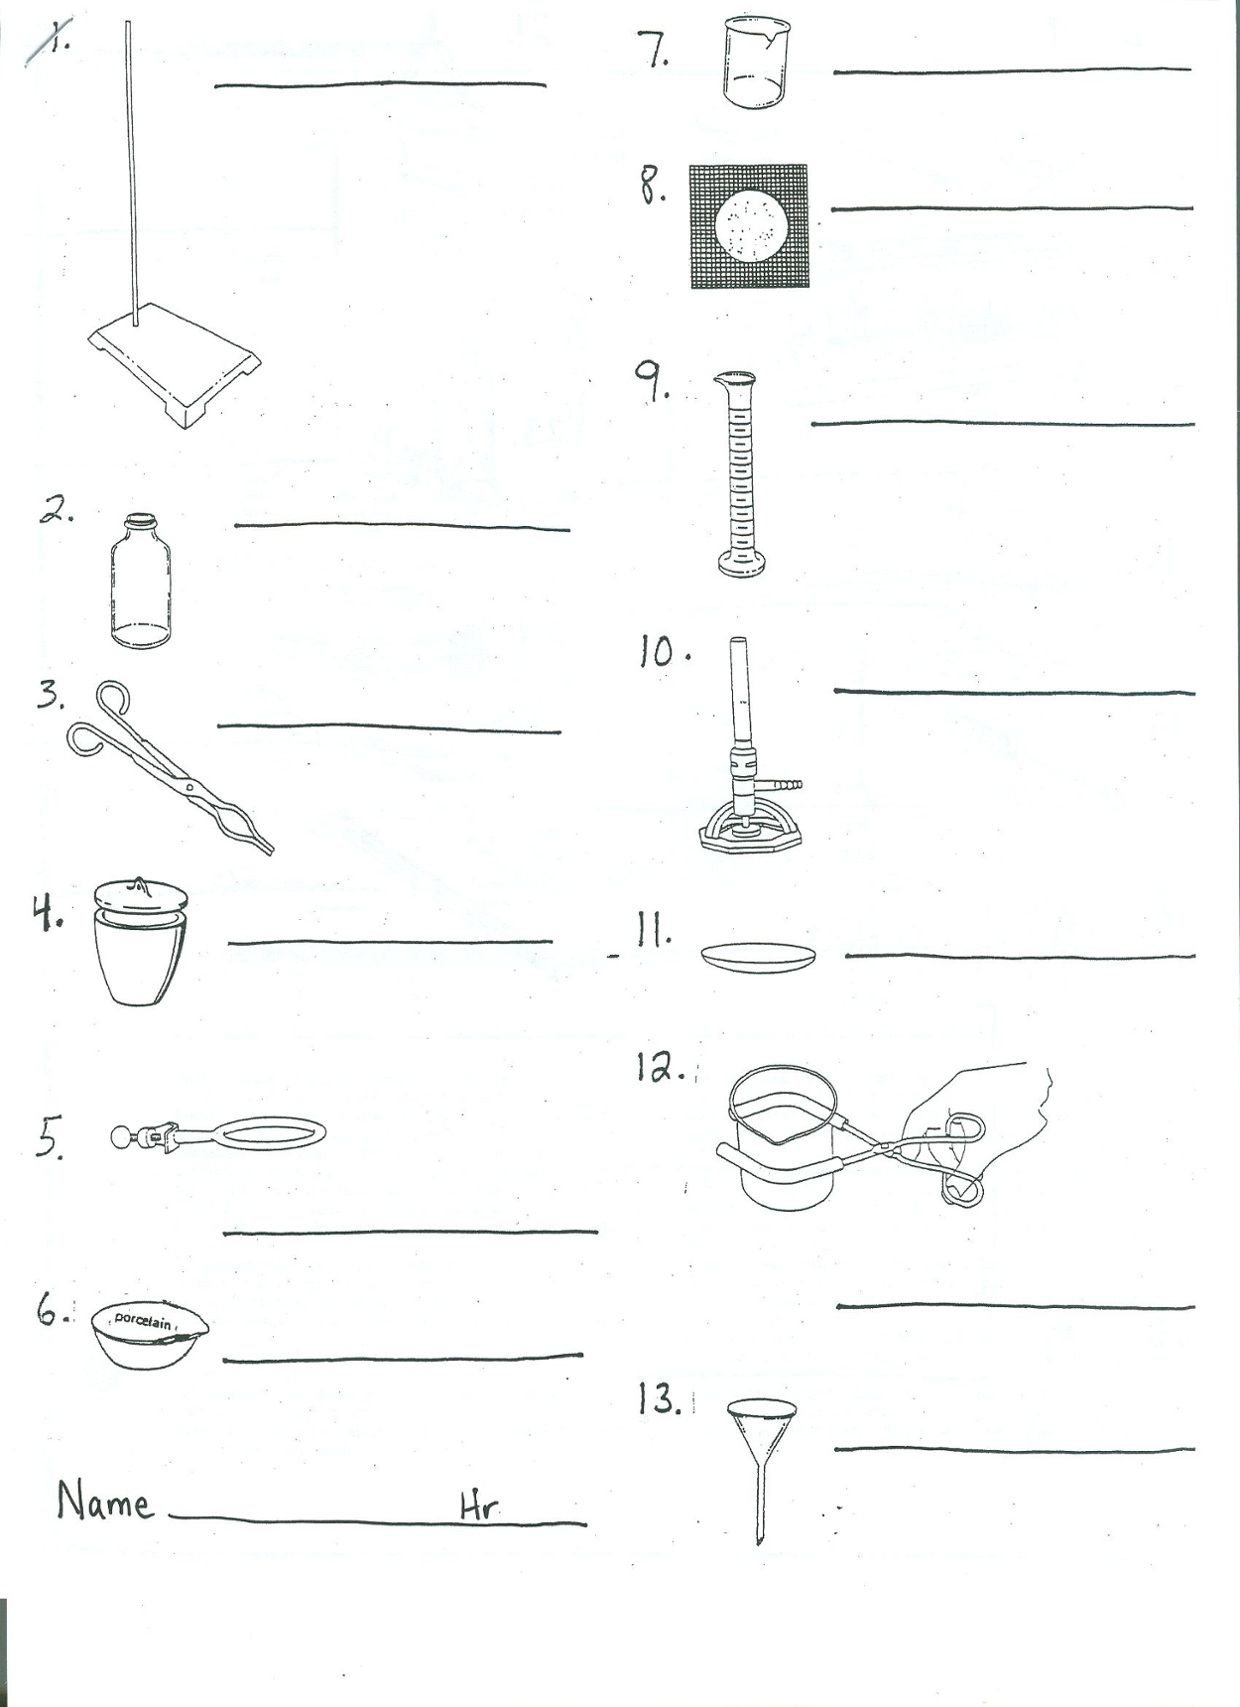 Chemistry Lab Equipment Worksheets